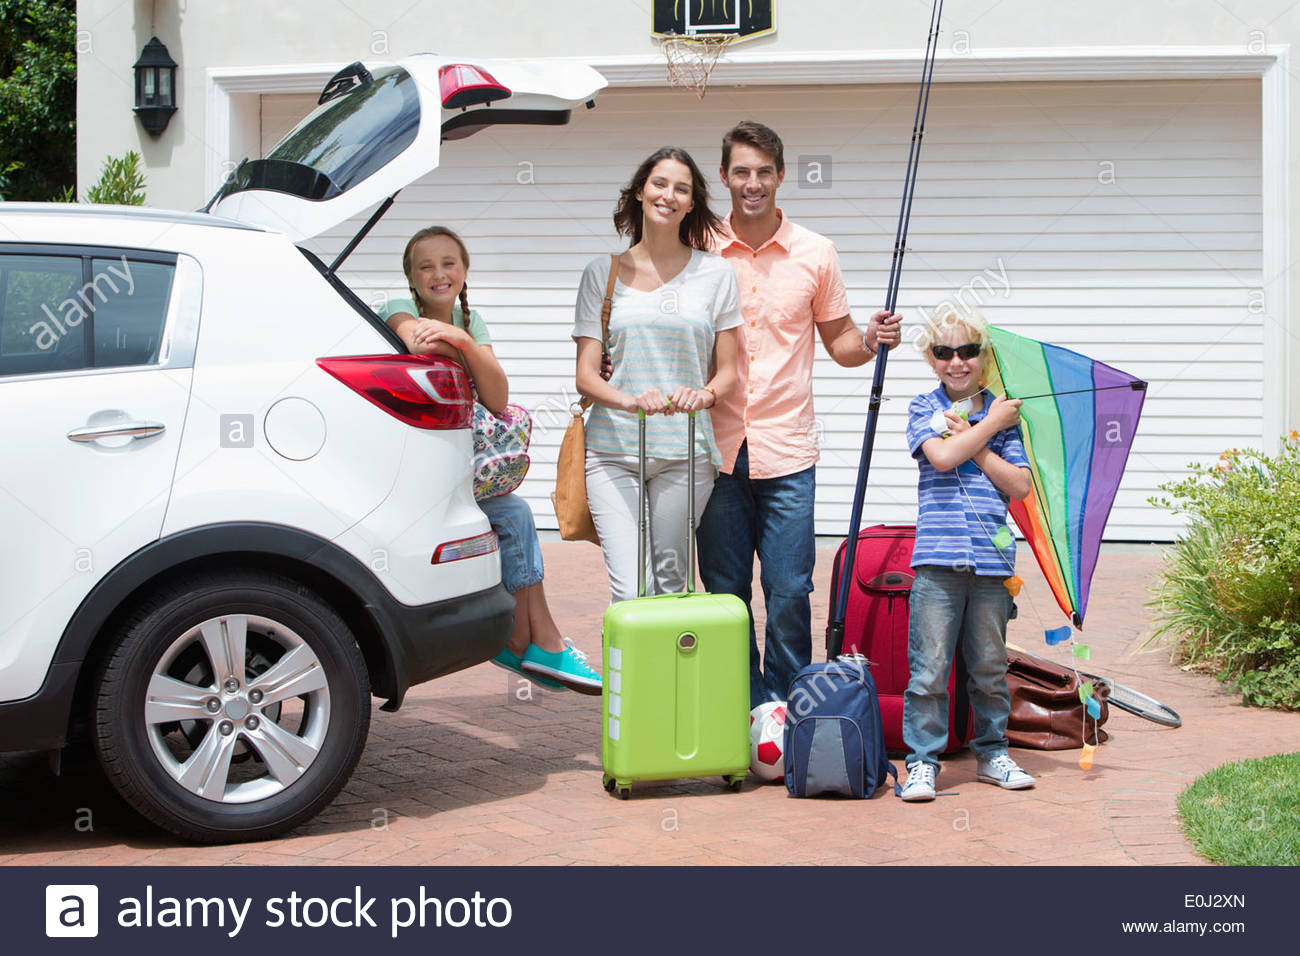 Portrait of smiling family packing car in sunny driveway - Stock Image